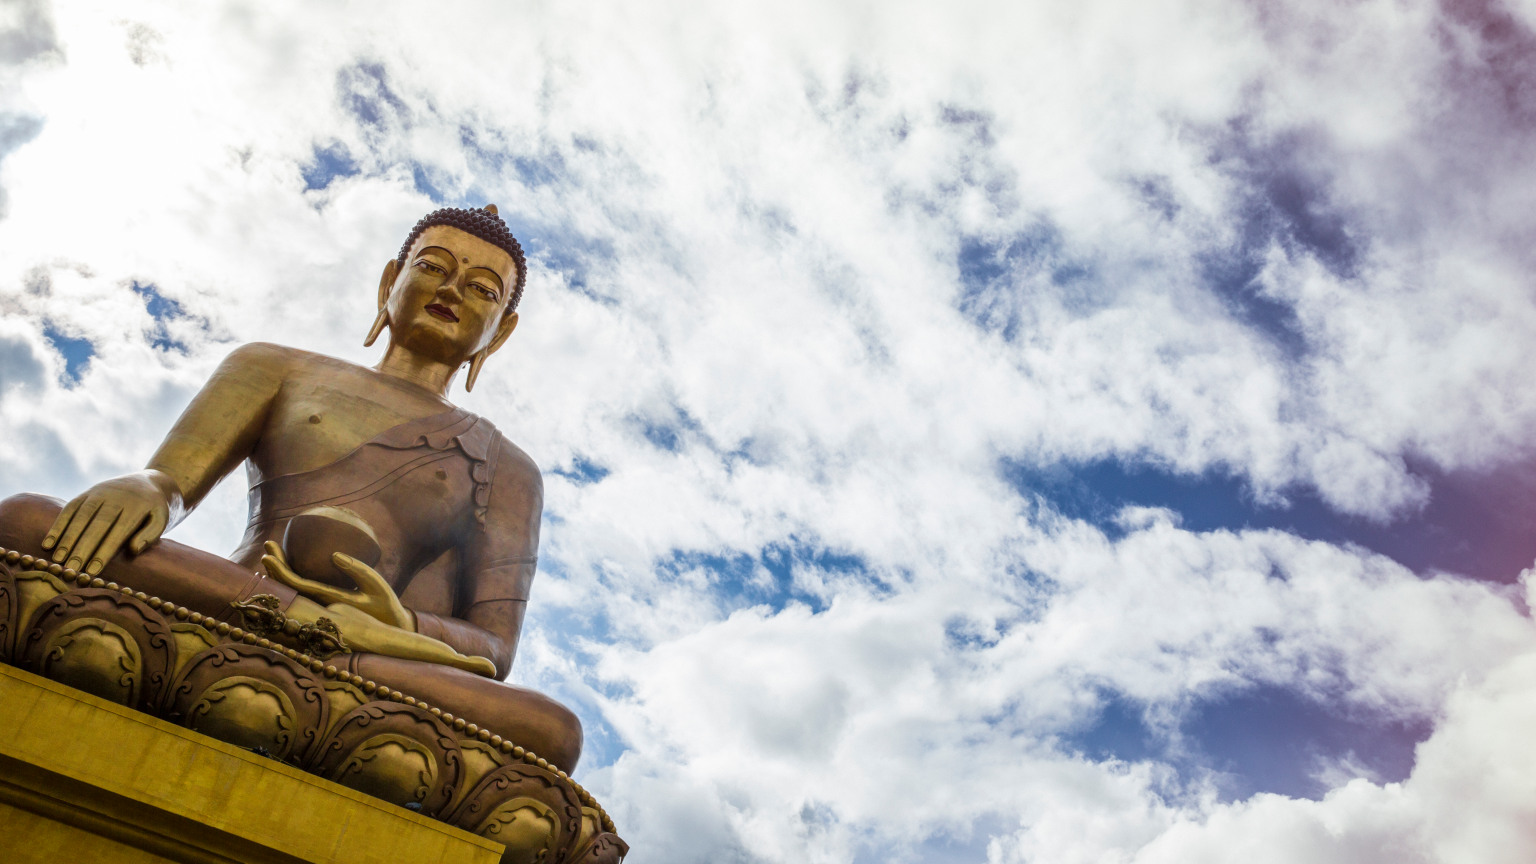 Bhutan-Thimphu-Buddha-Point-Oana-Dragan